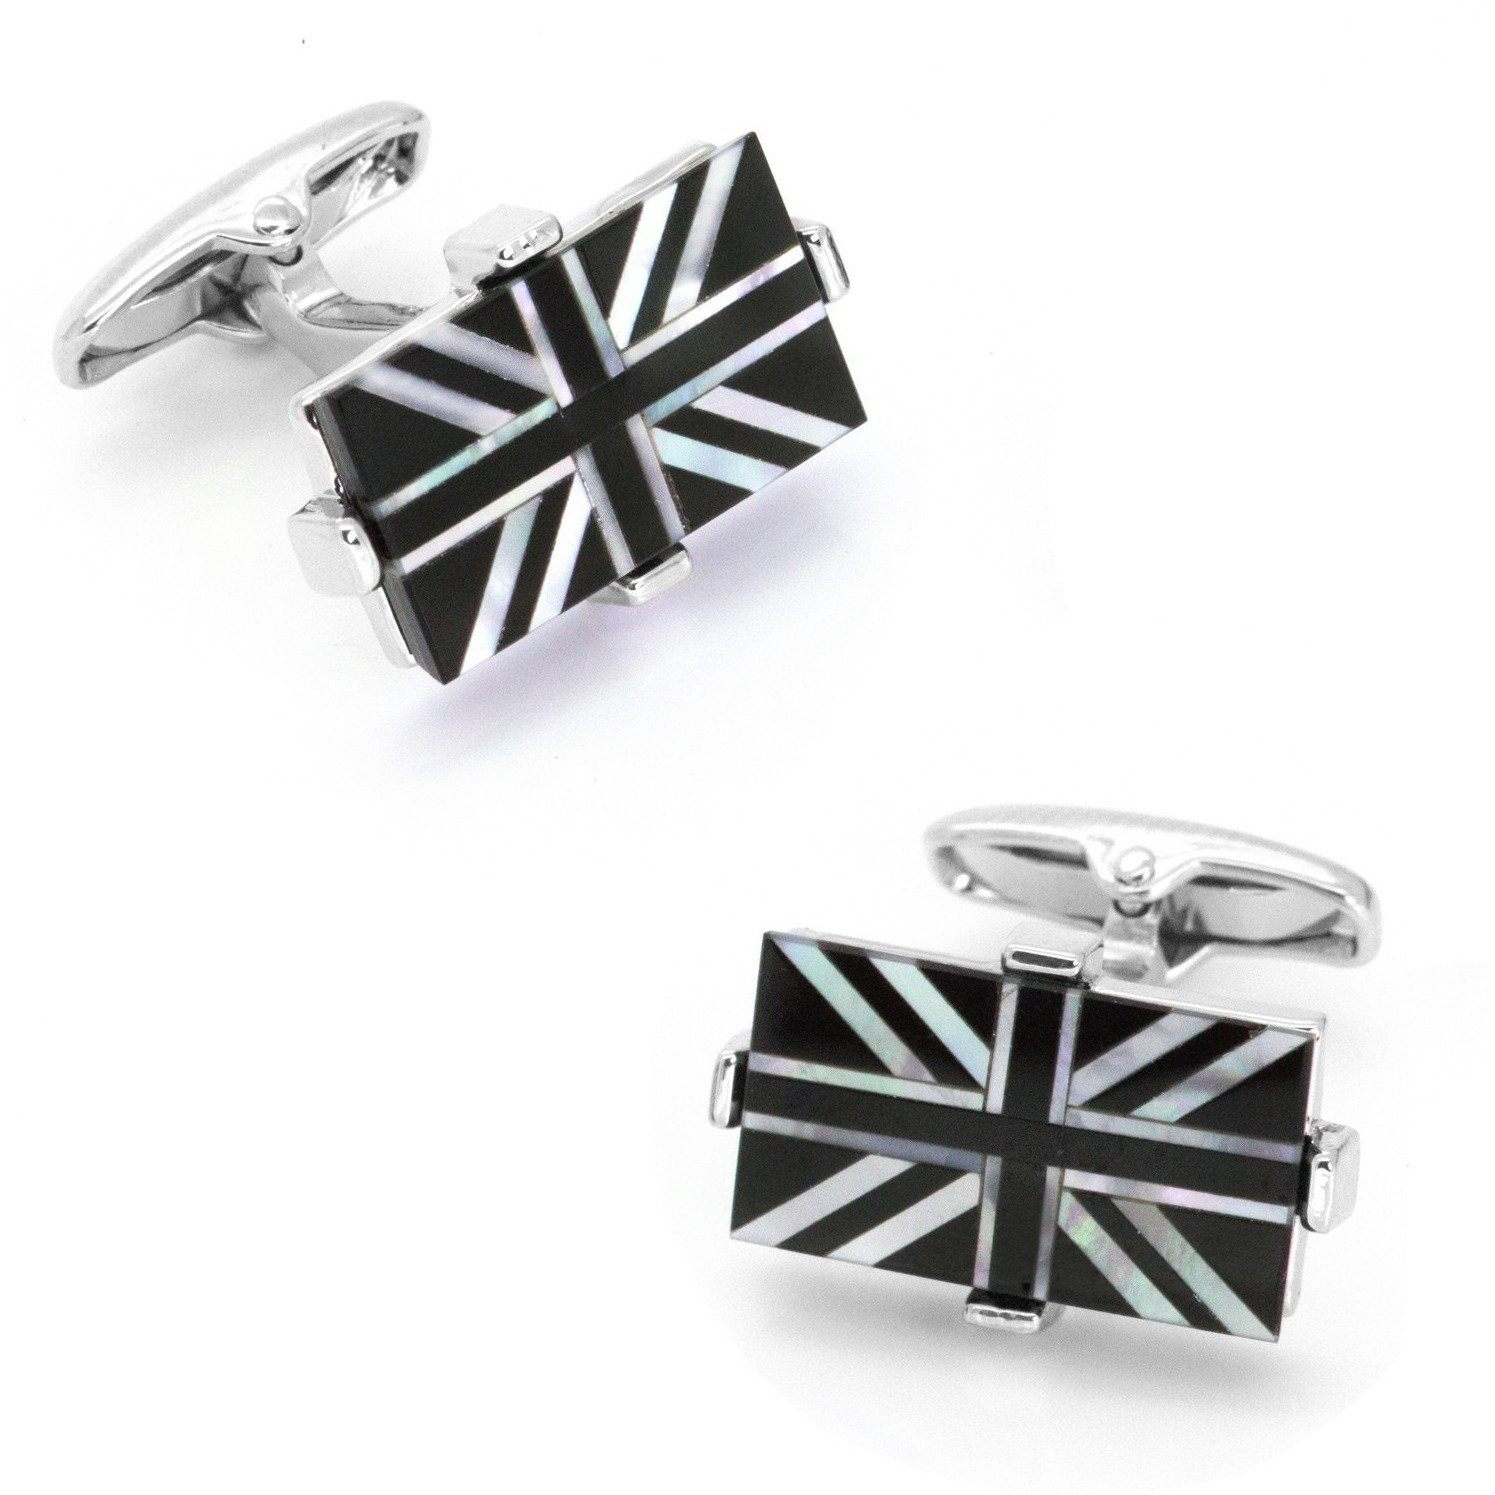 Union Jack - Flag of England UK Cufflinks in Onyx and Mother of Pearl, Novelty Cufflinks, Cuffed.com.au, CL8573, $29.00